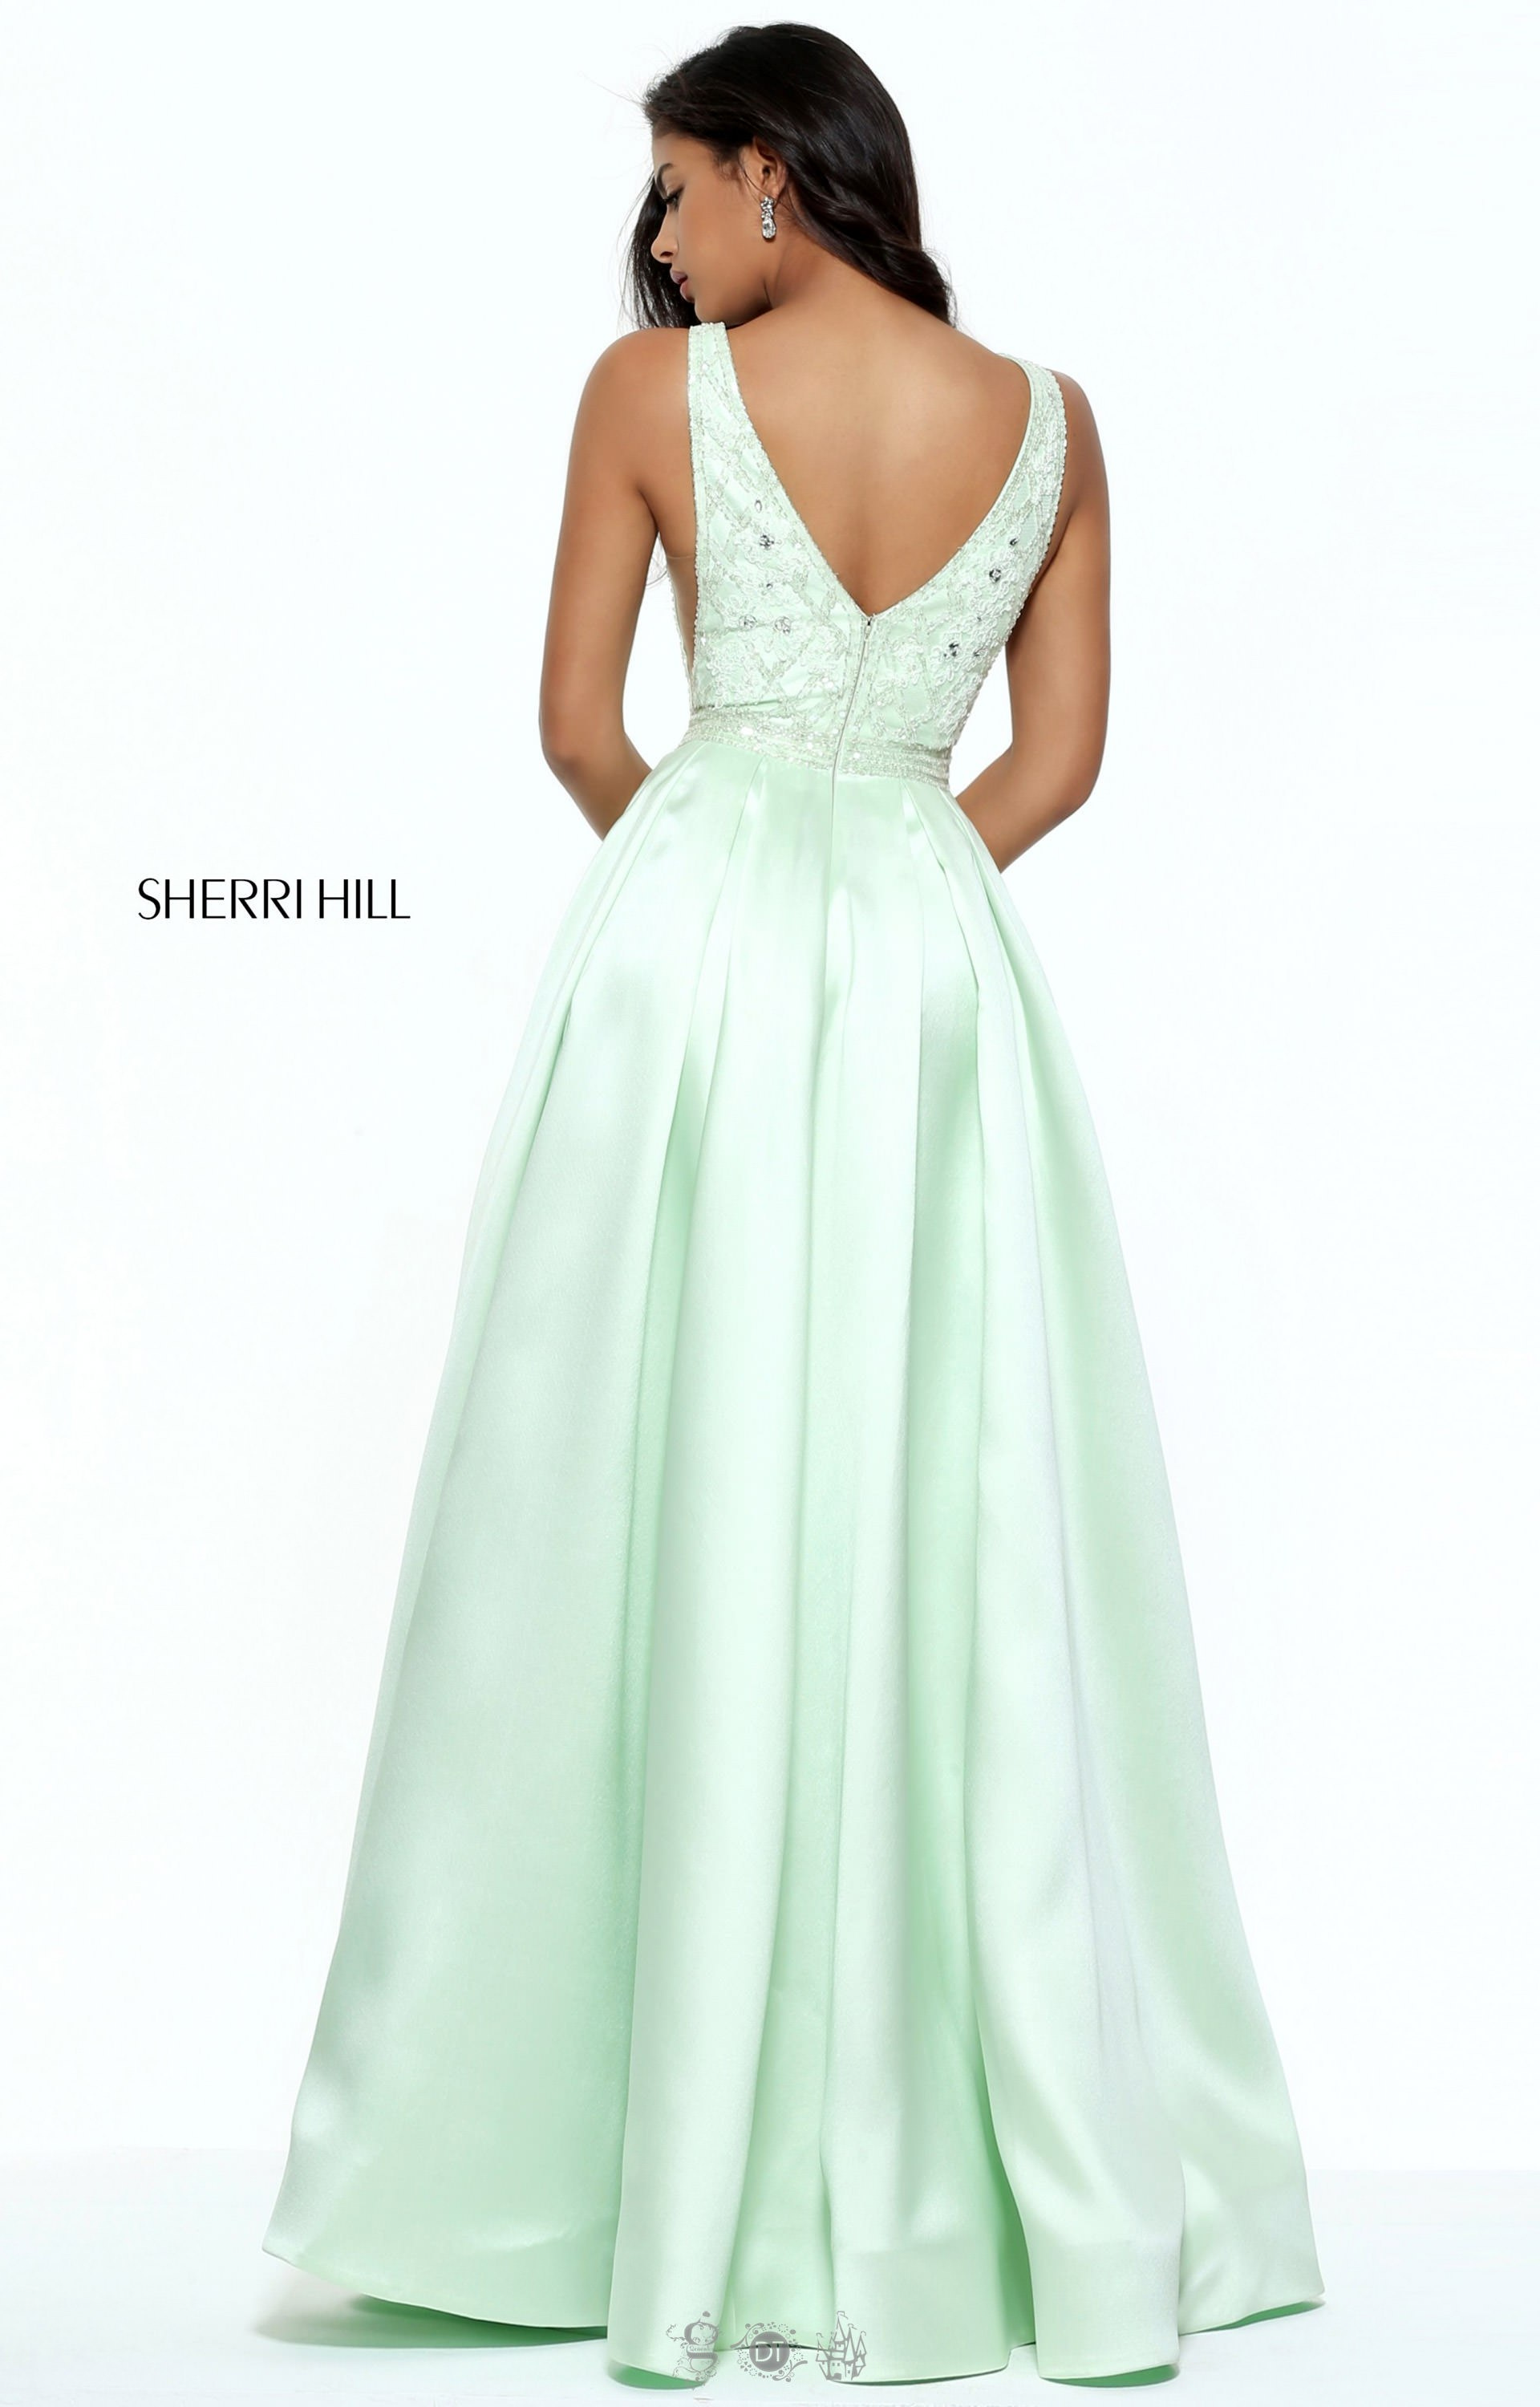 Sherri Hill 50964 Satin Ballgown With Beaded V Neckline